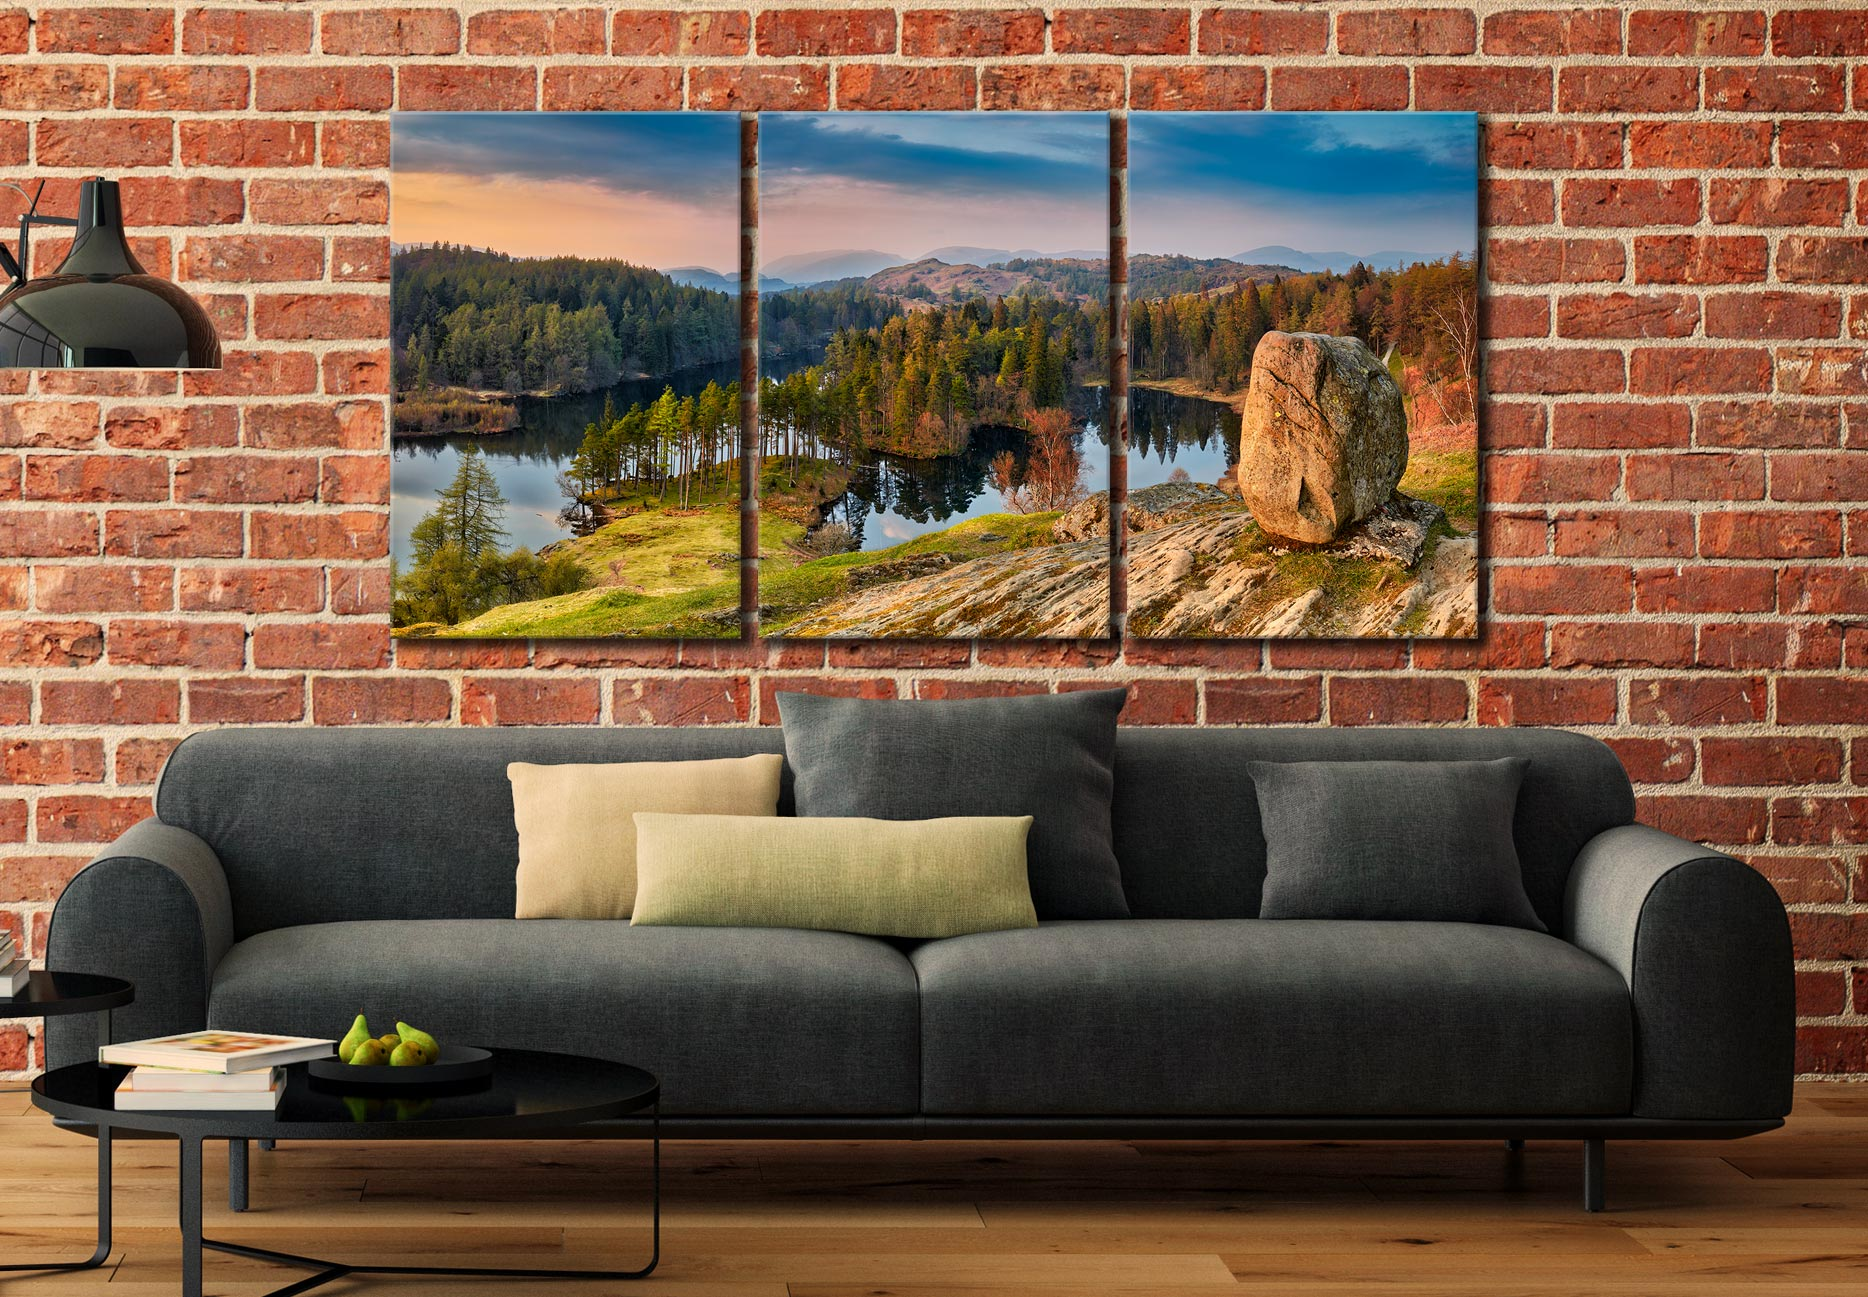 Dusk at Tarn Hows - 3 Panel Canvas on Wall